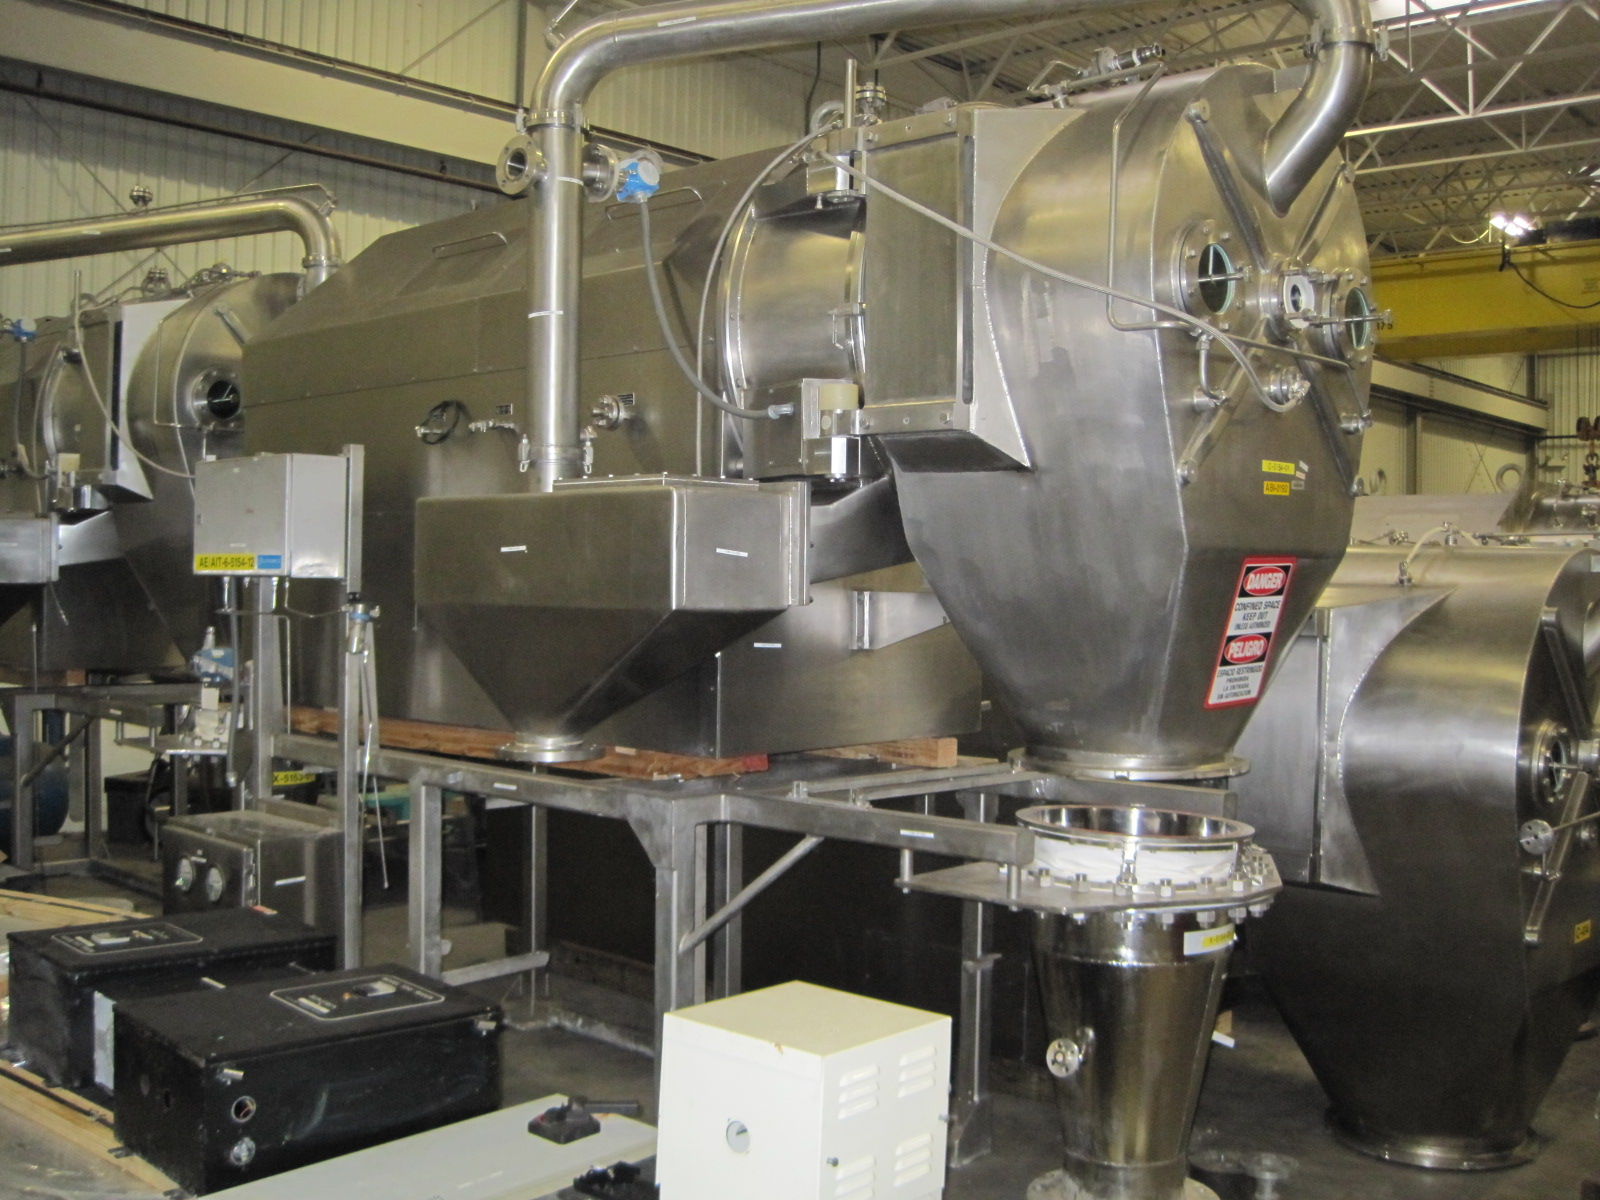 SOLD  HEINKEL Model HF800.1 Pharmaceutical Grade Inverting Filter Centrifuge.  Contact Parts are (1.4571) 316/Ti Stainless Steel. Inner Bowl Dia. 800mm. Capacity 149KG/119L. 1600 RPM Max Drum Speed. G-Force 1138 G's.  All Electrical unit Complete with Controls.